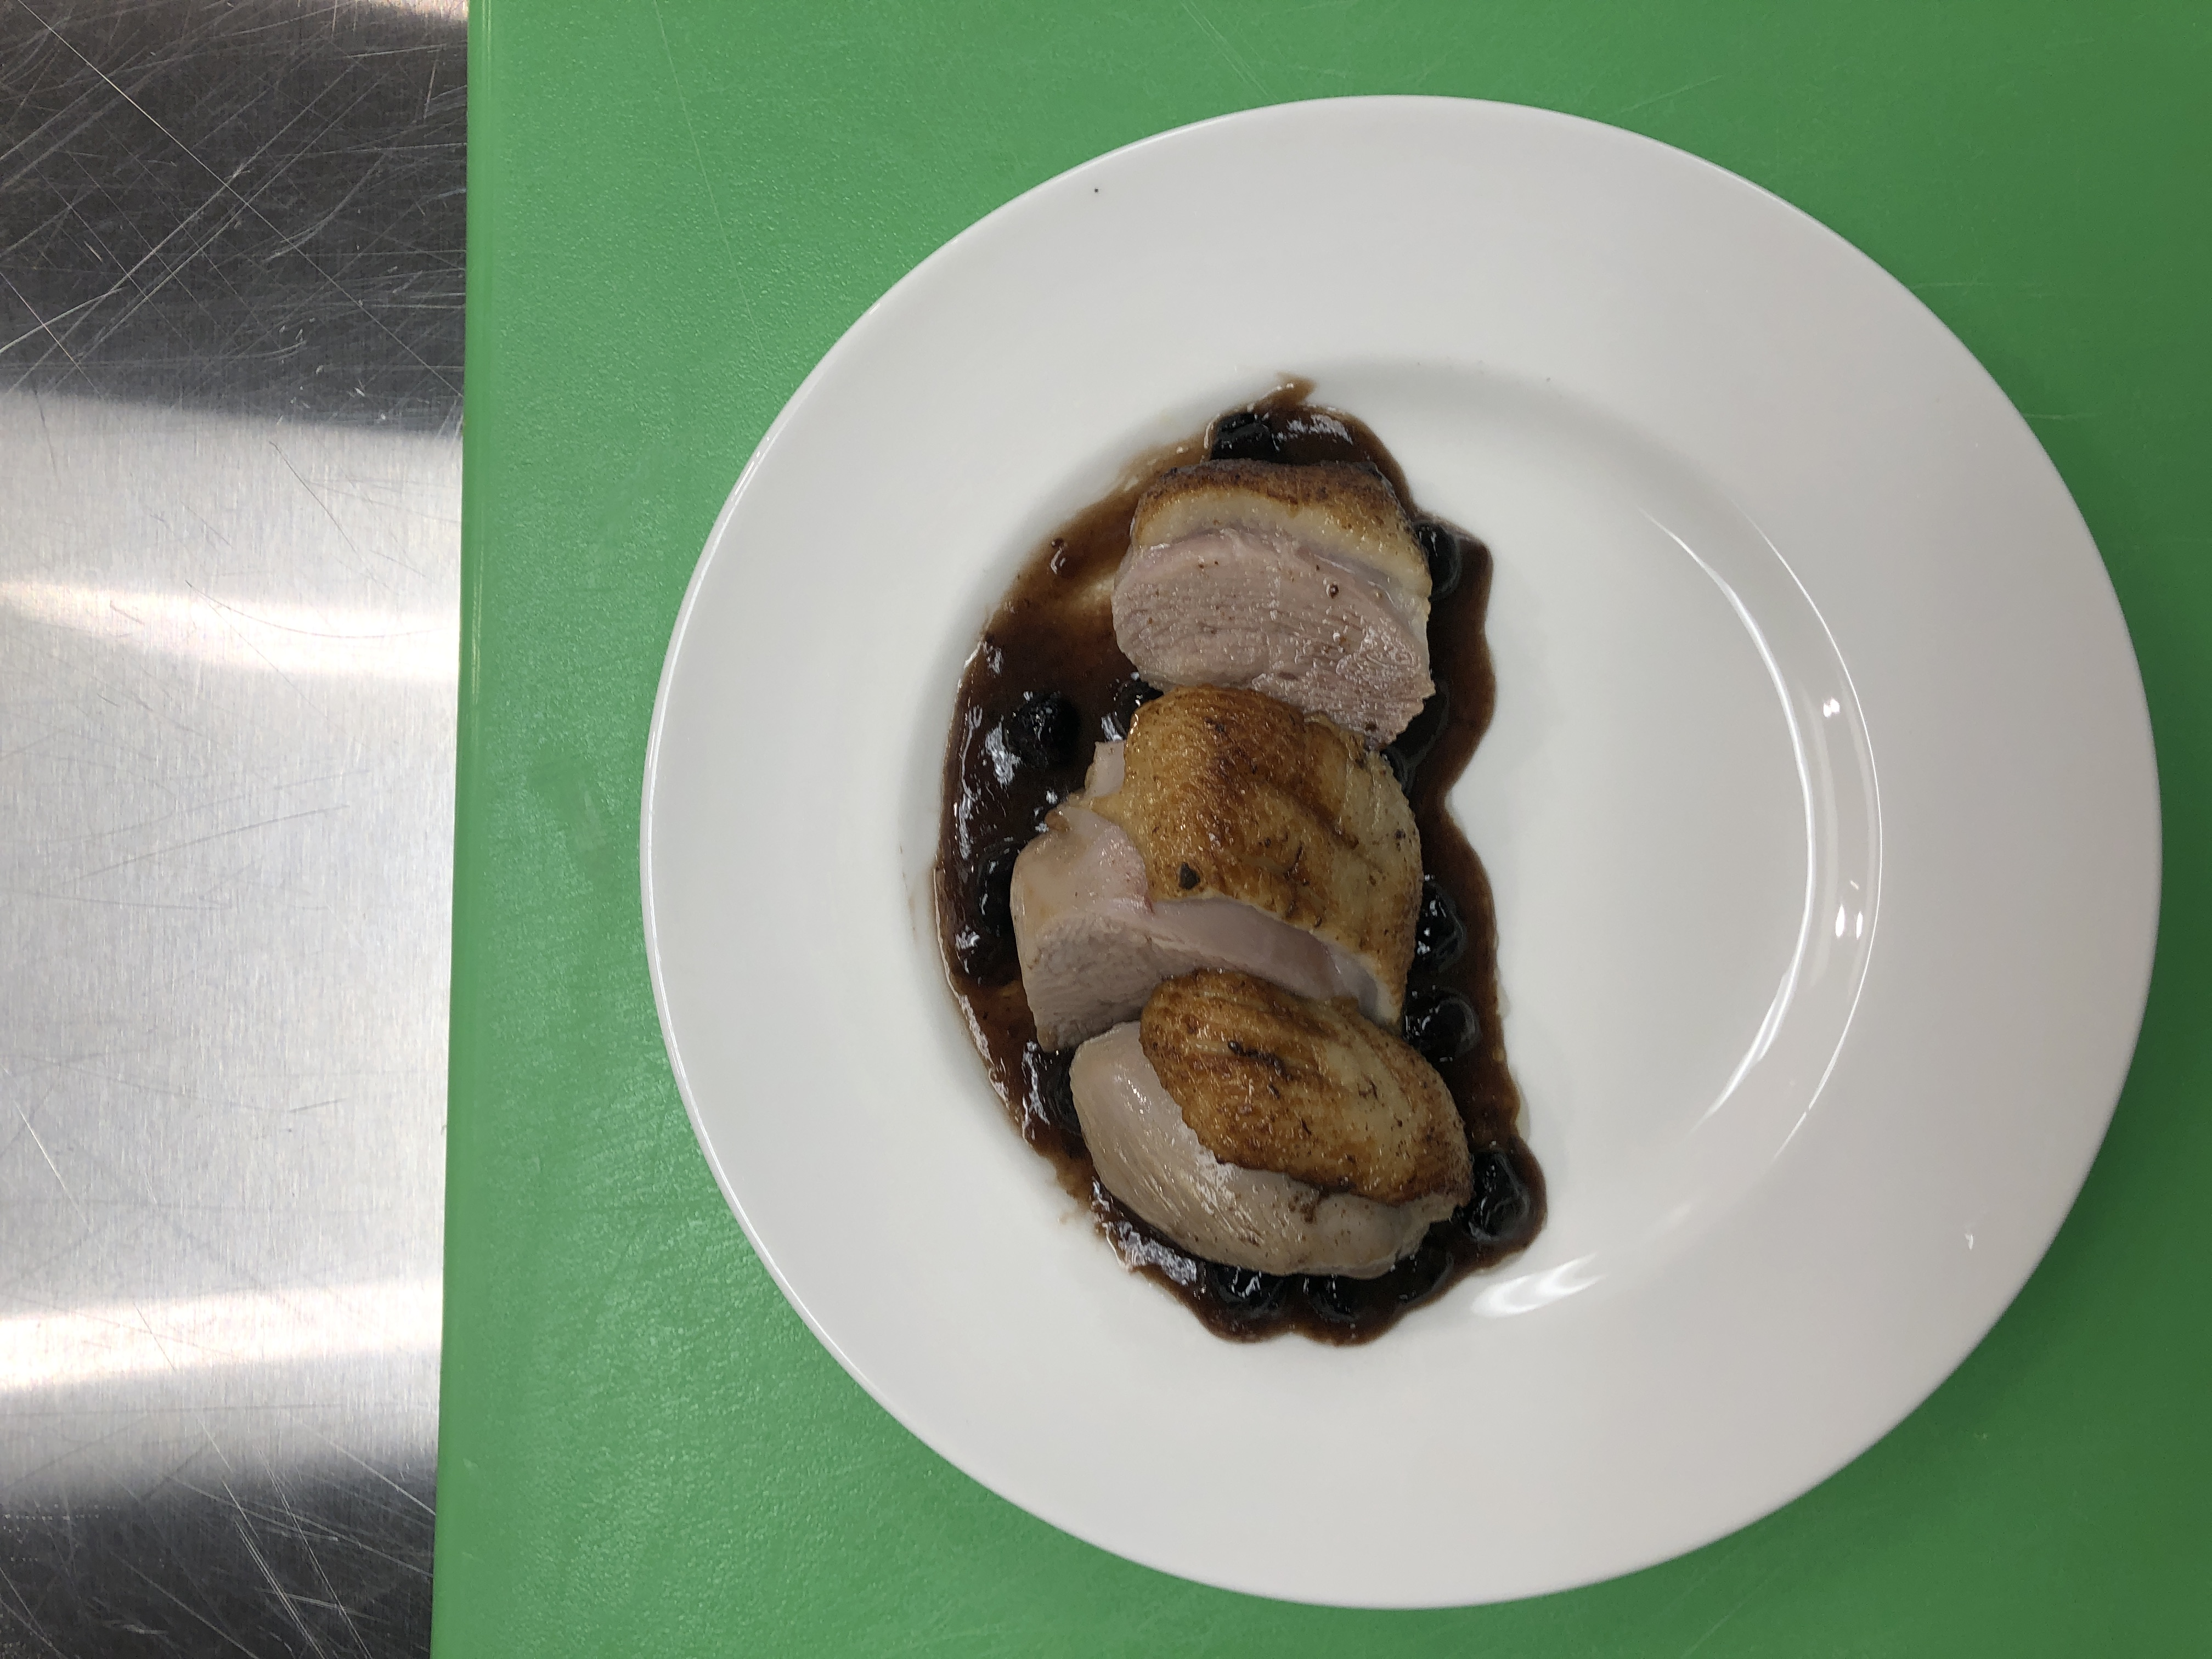 Hickory Smoked Duck Breast With Blueberry Demi Glaze